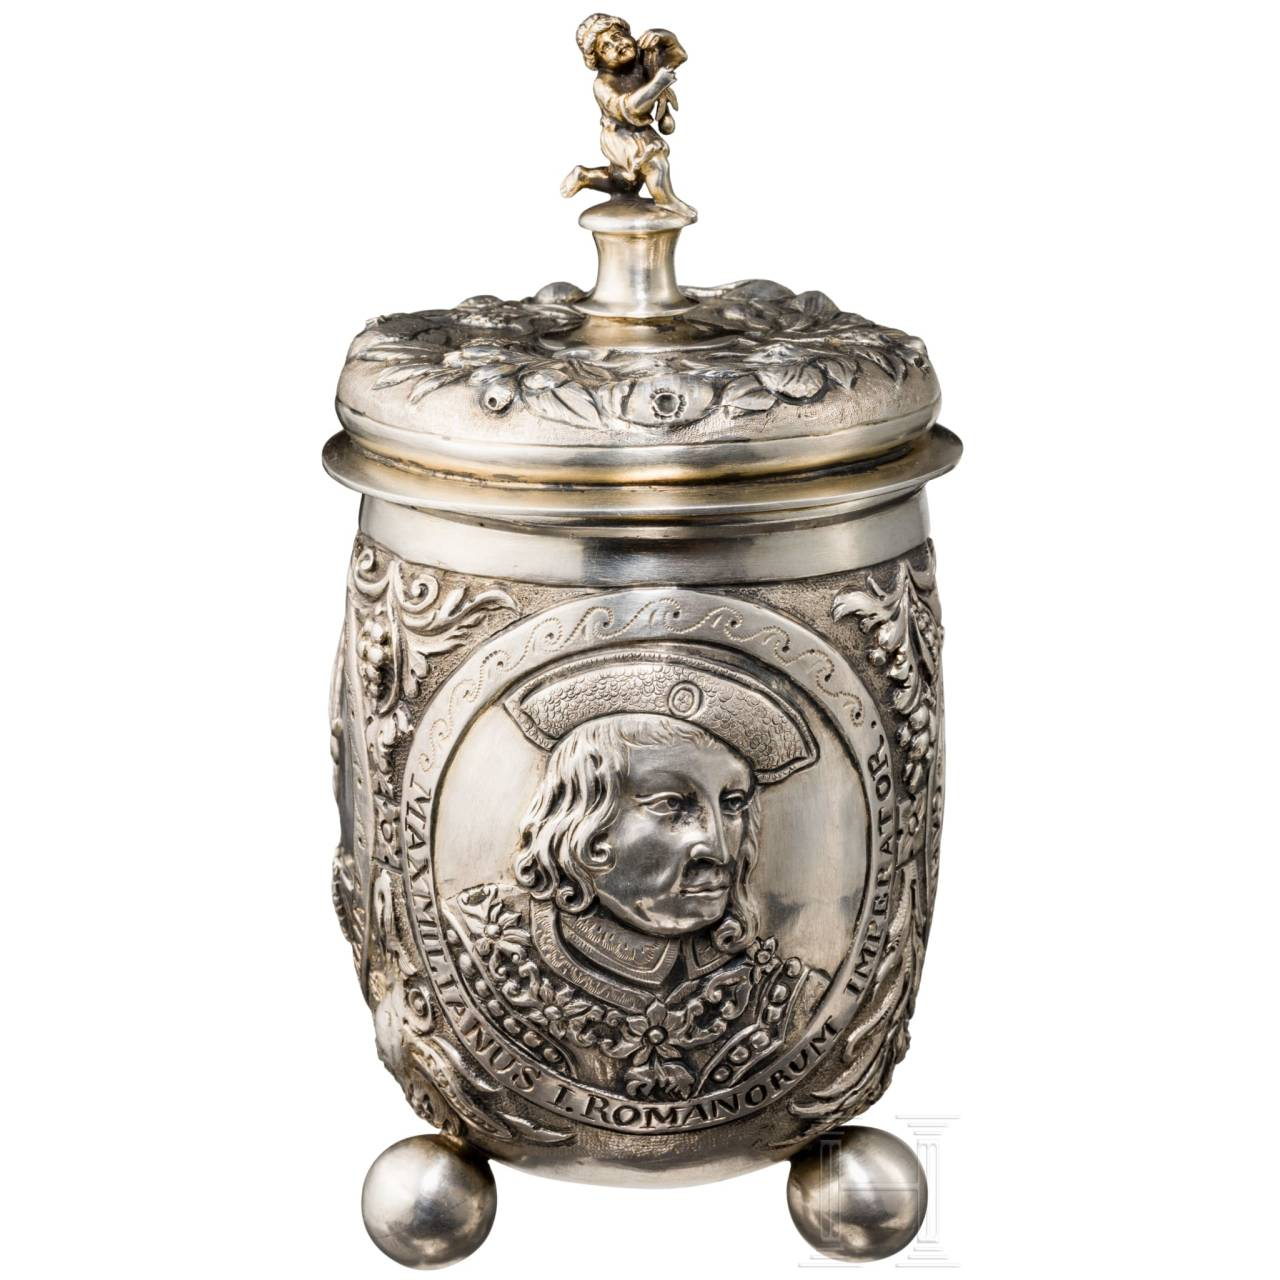 A silver beaker in 17th century Baroque style, Augsburg, circa 1870/80